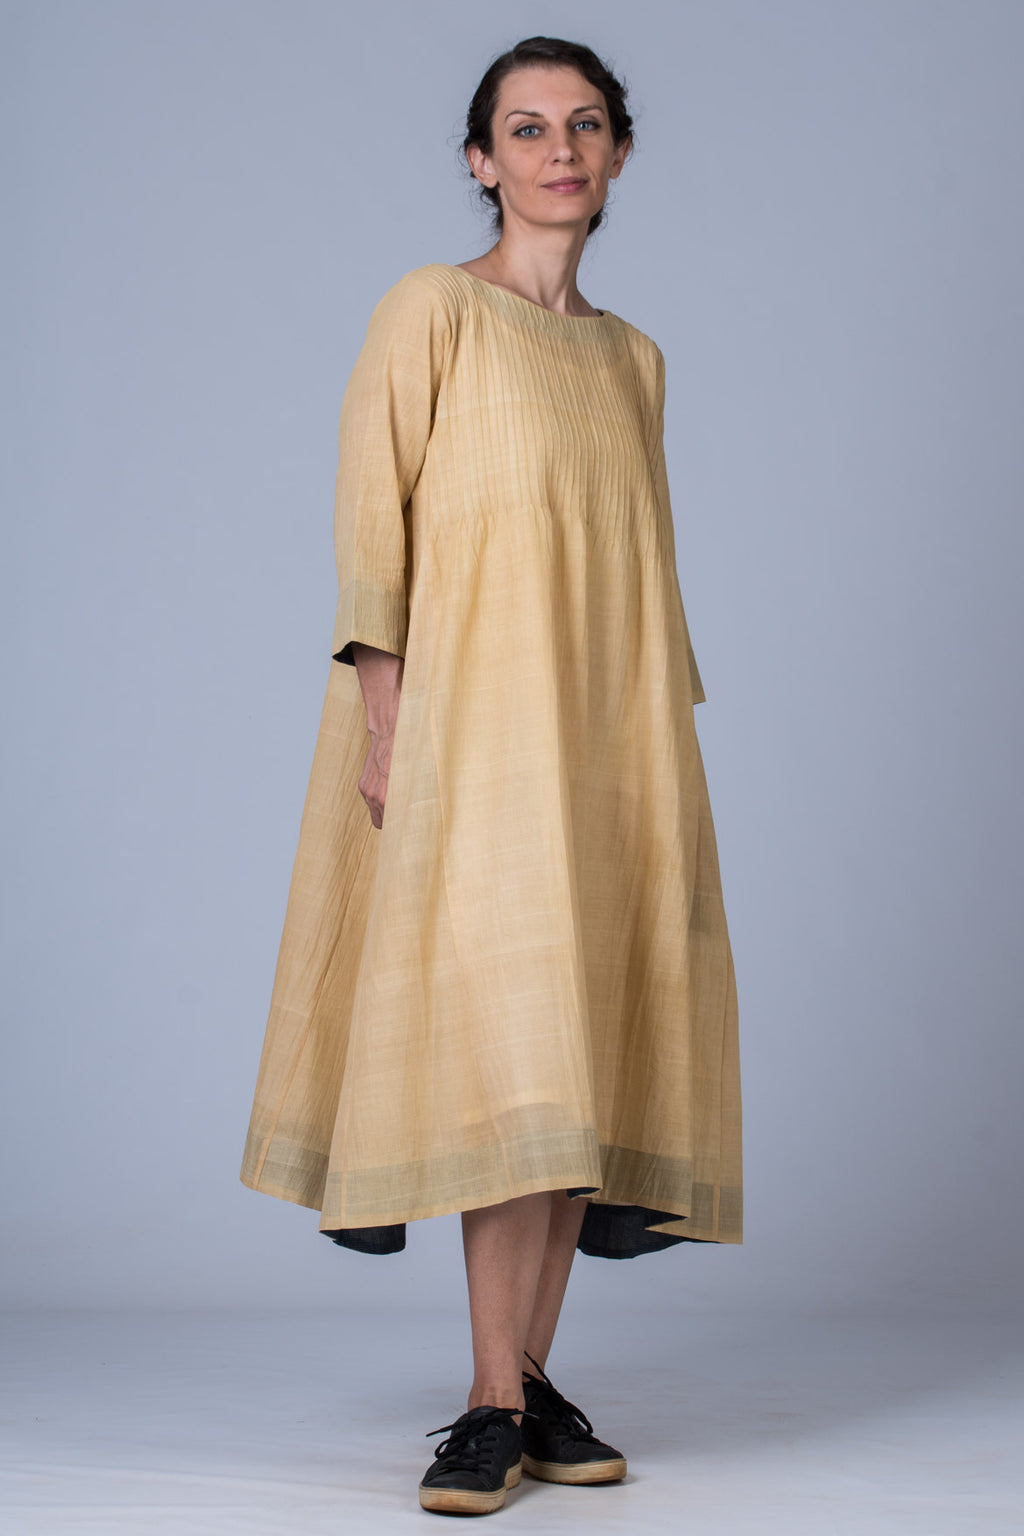 Neem dyed Organic cotton Dress - UDUPU - Upasana Design Studio